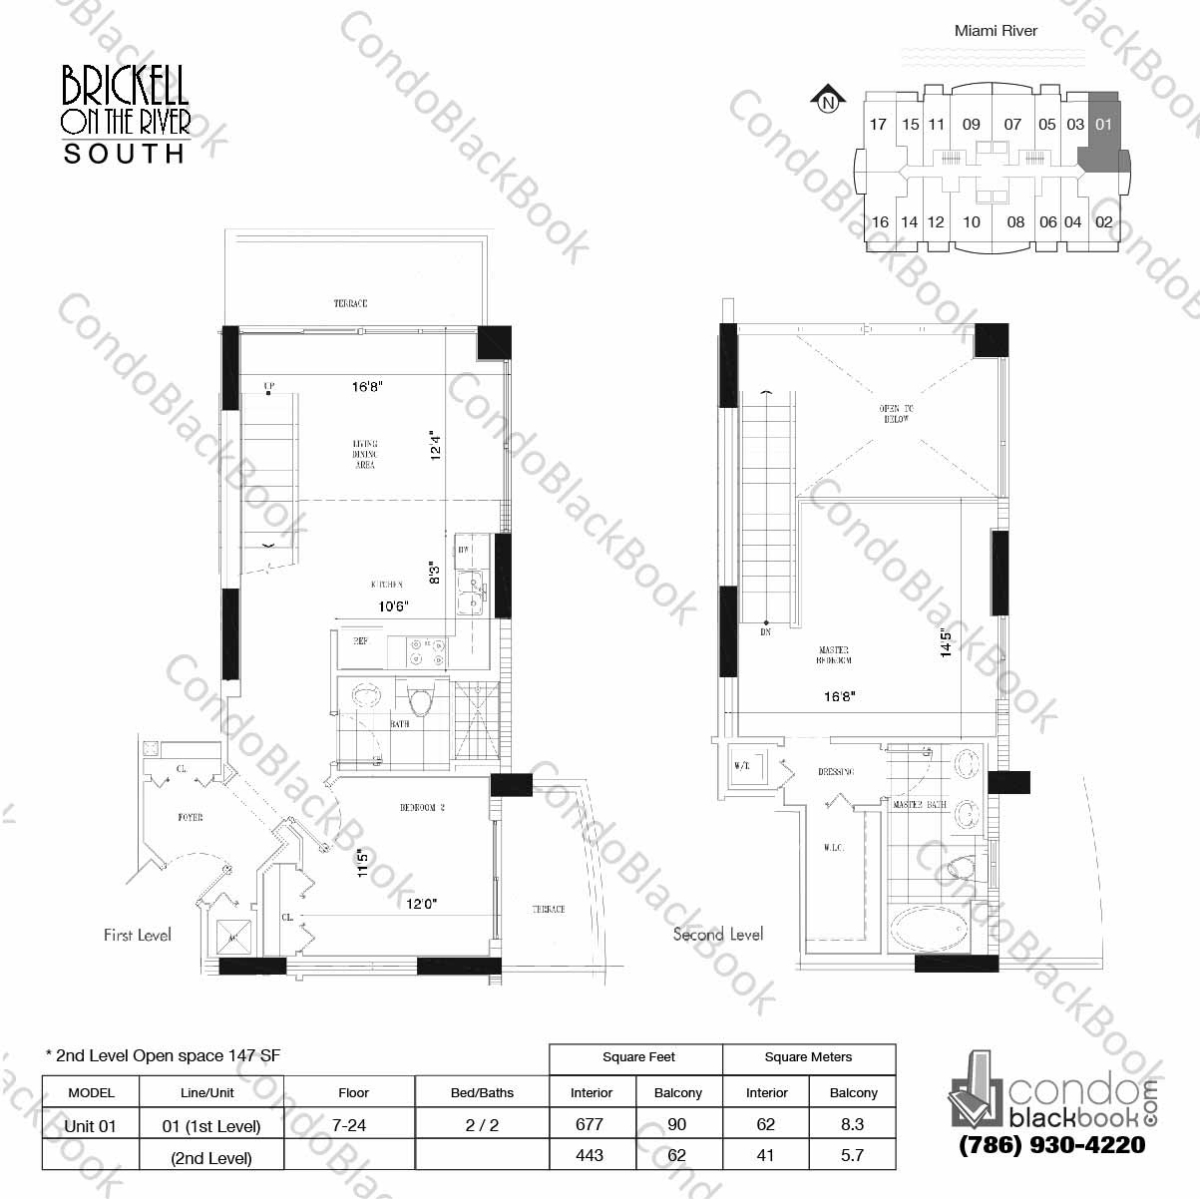 Floor plan for Brickell on the River North Brickell Miami, model Unit 01, line 01, 2 / 2 bedrooms, 1120 sq ft